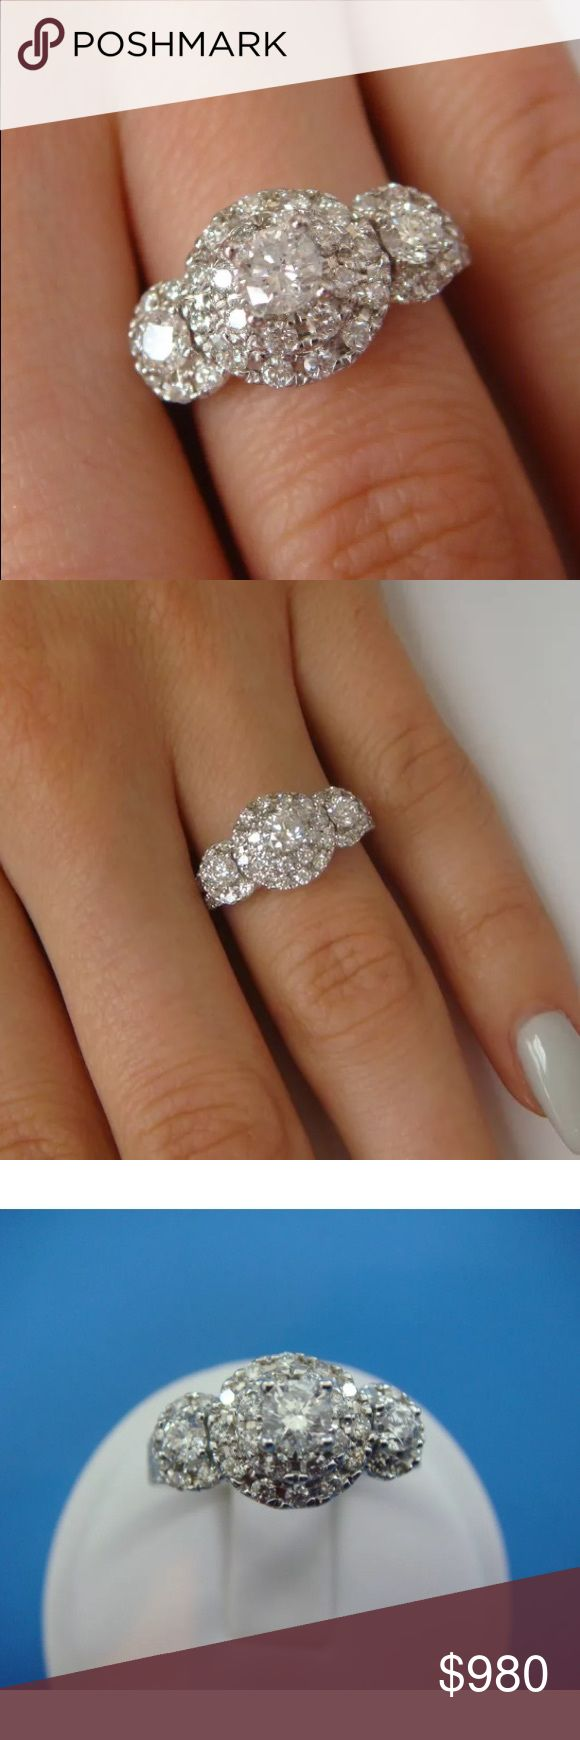 Gorgeous 1.10 carat 14k diamond halo ring Gorgeous 1.10 carat 14k diamond halo ring! High quality diamonds, comes with appraisal! Jewelry Rings